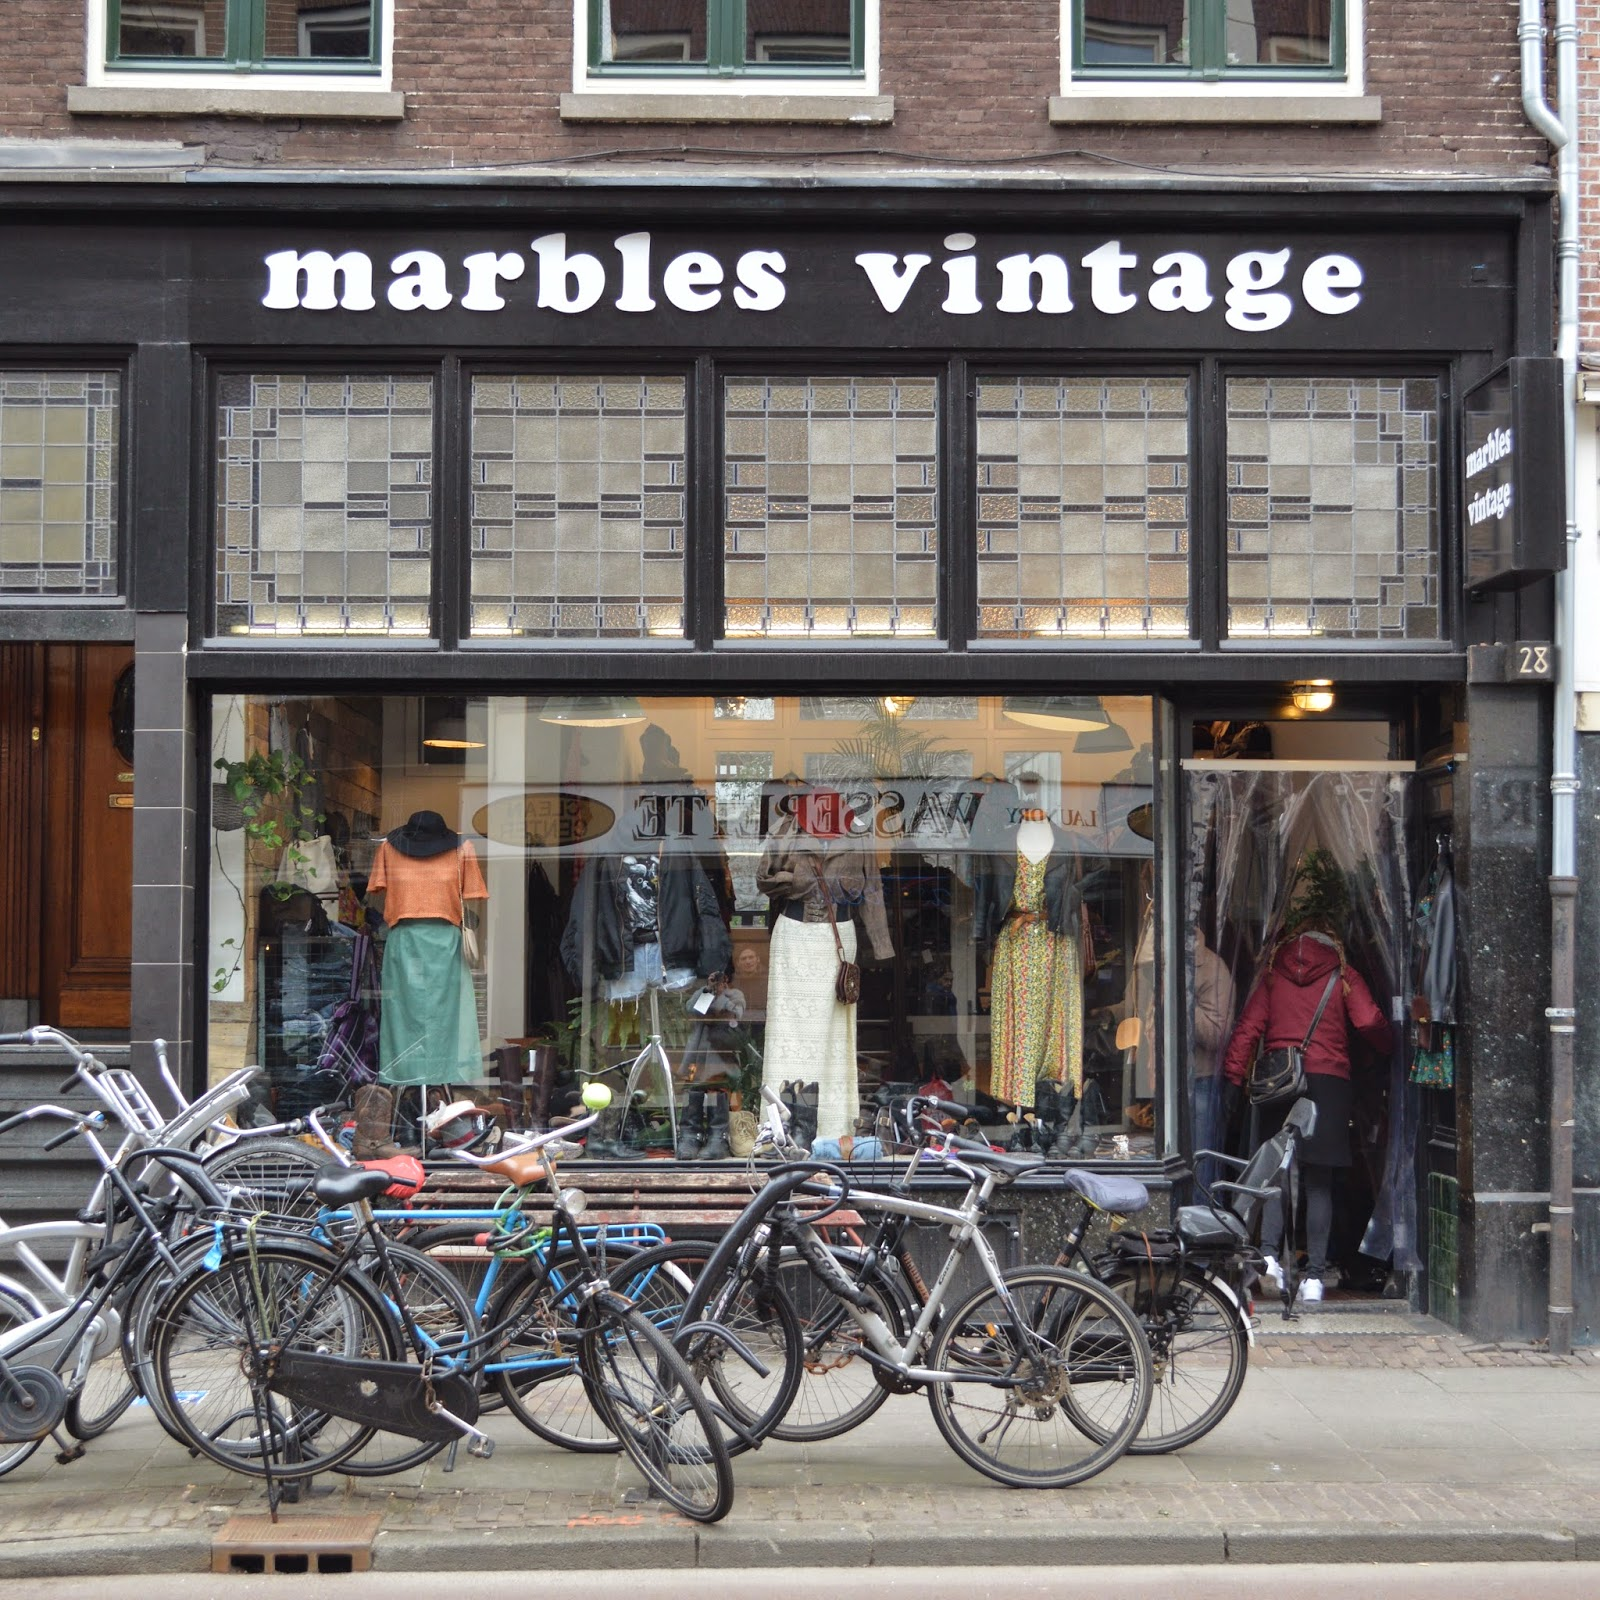 Marbles vintage shop shopping Amsterdam